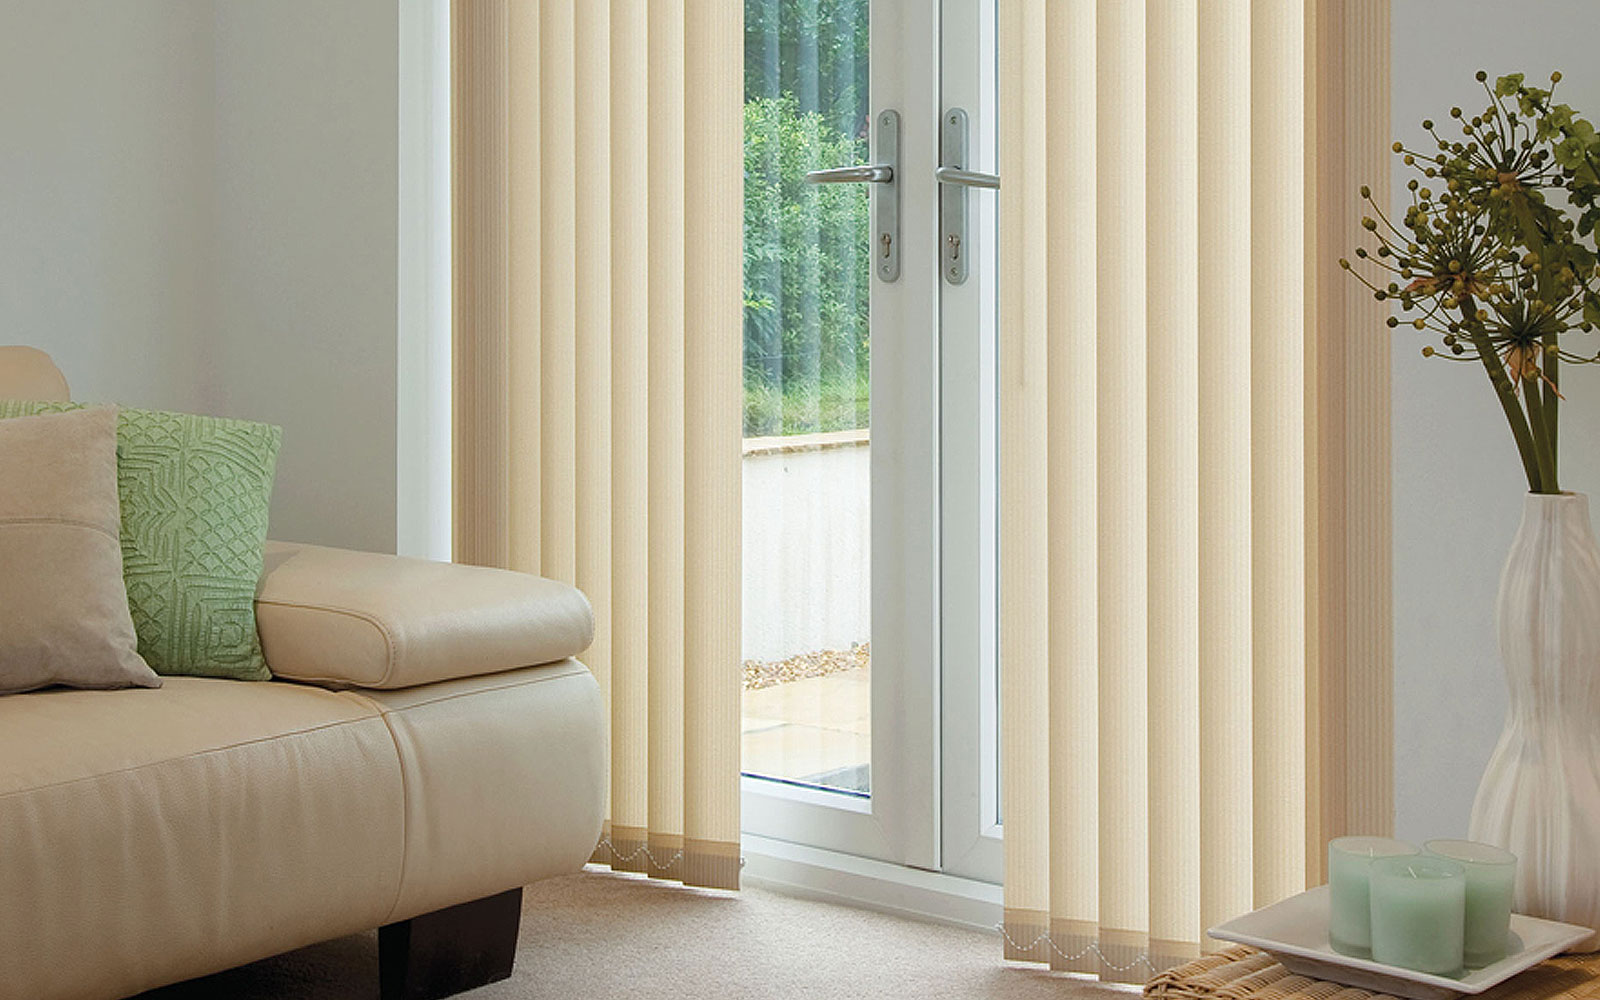 vertical blinds 238.jpg CEMIRCV